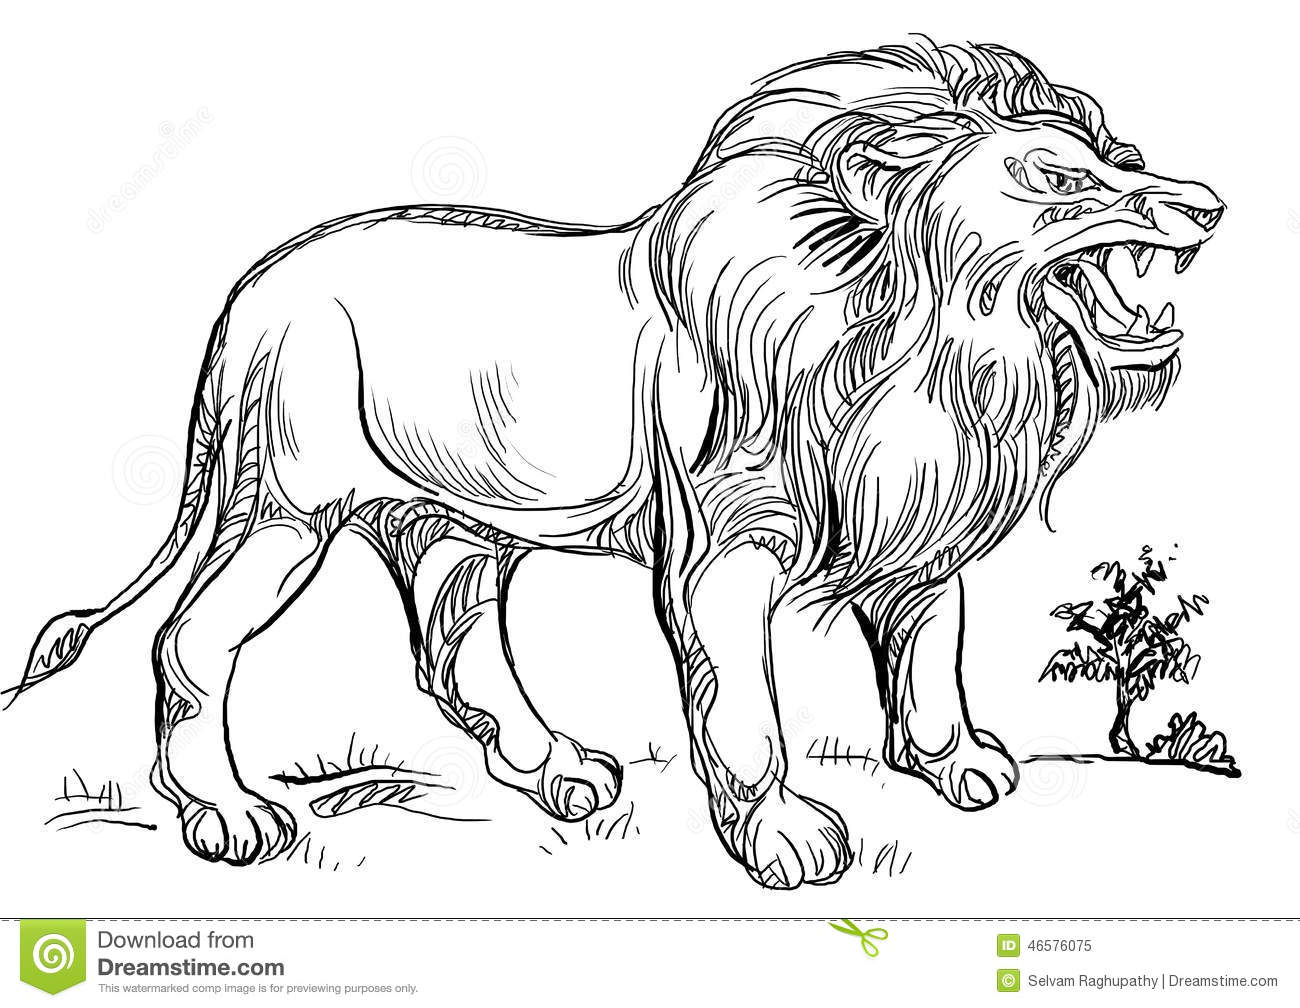 Roaring Lion Stock Illustration - Image: 46576075 - photo#47